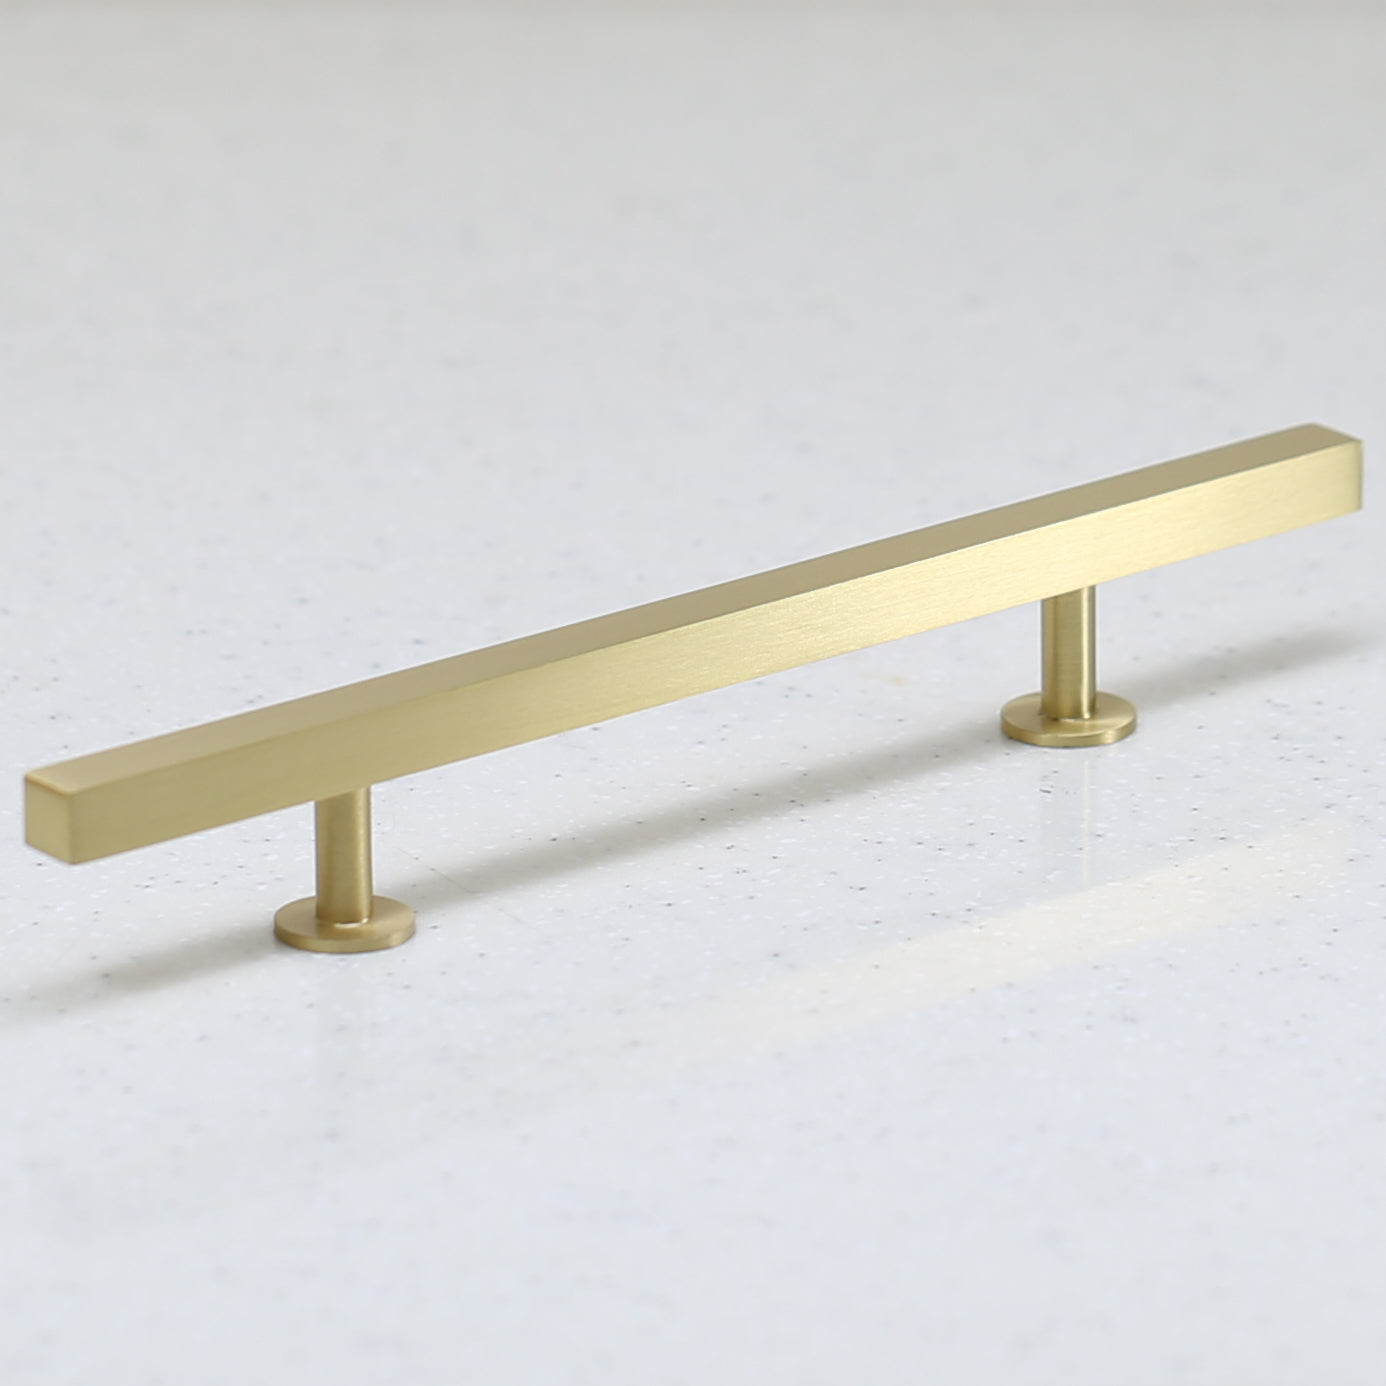 "The Vouvant Collection Pull - 128mm Center to Center (5"") - Satin Brass - Handle Pull Decorative Hardware"